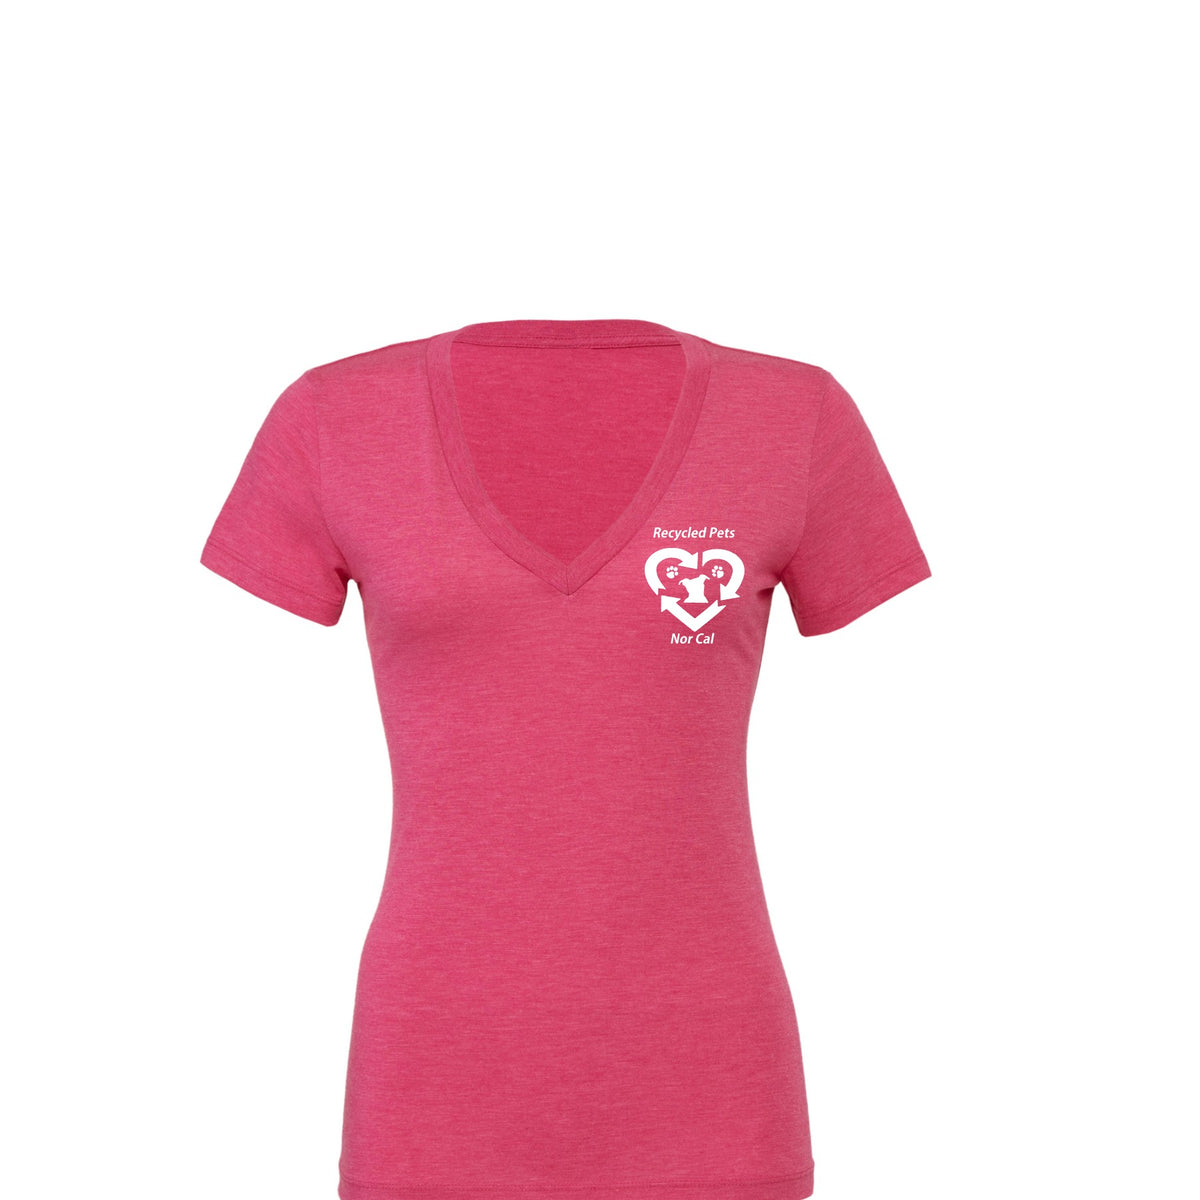 Recycled Pets Women's Tri-Blend Deep V-Neck T-Shirt